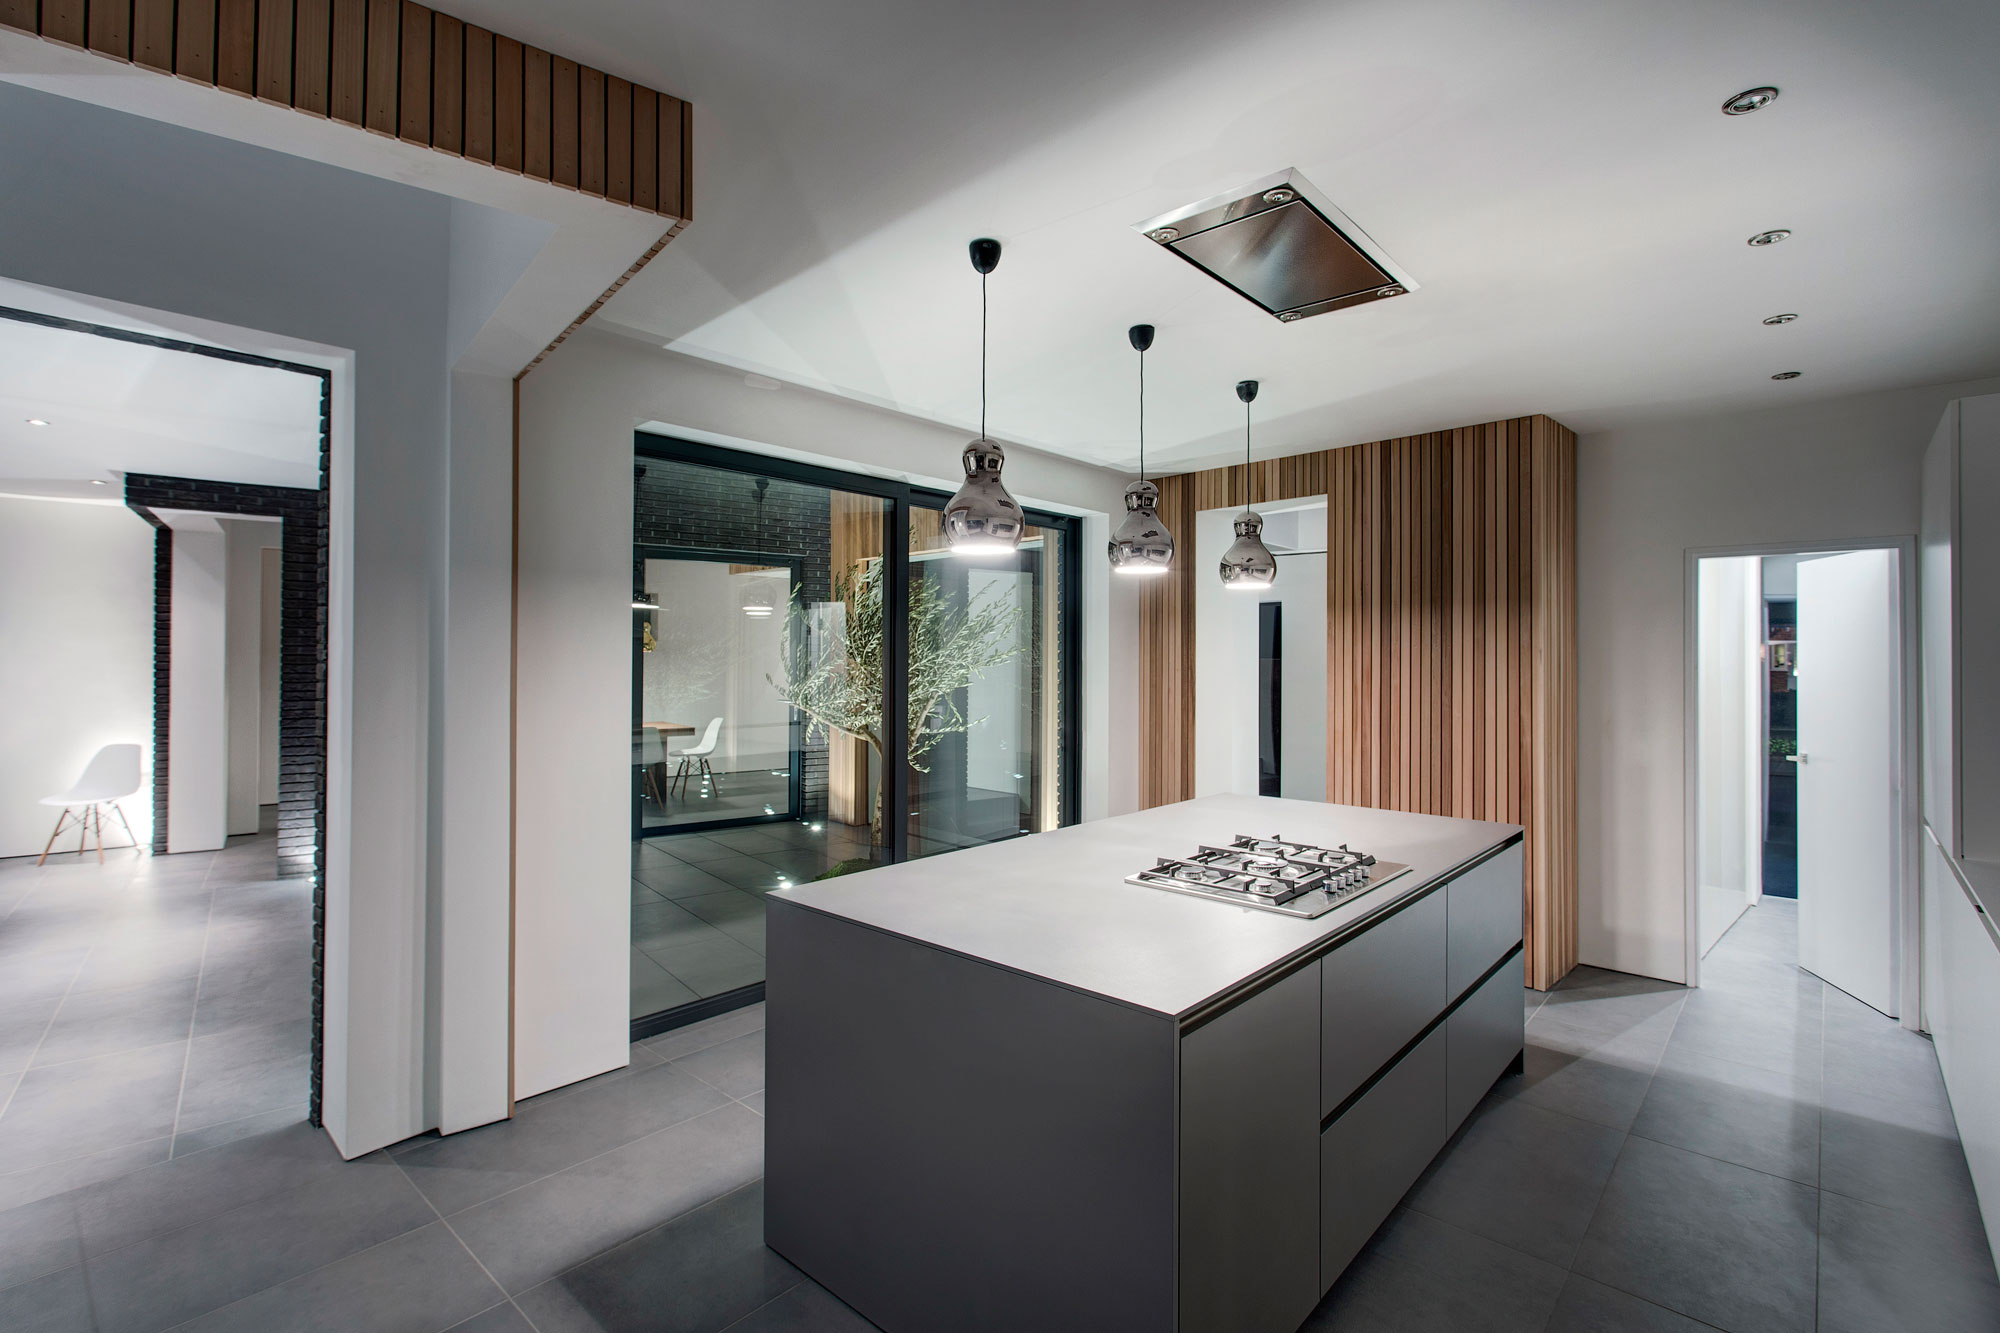 Modern Kitchen, Island, Pendant Lights, Modern Home in Hampshire, England